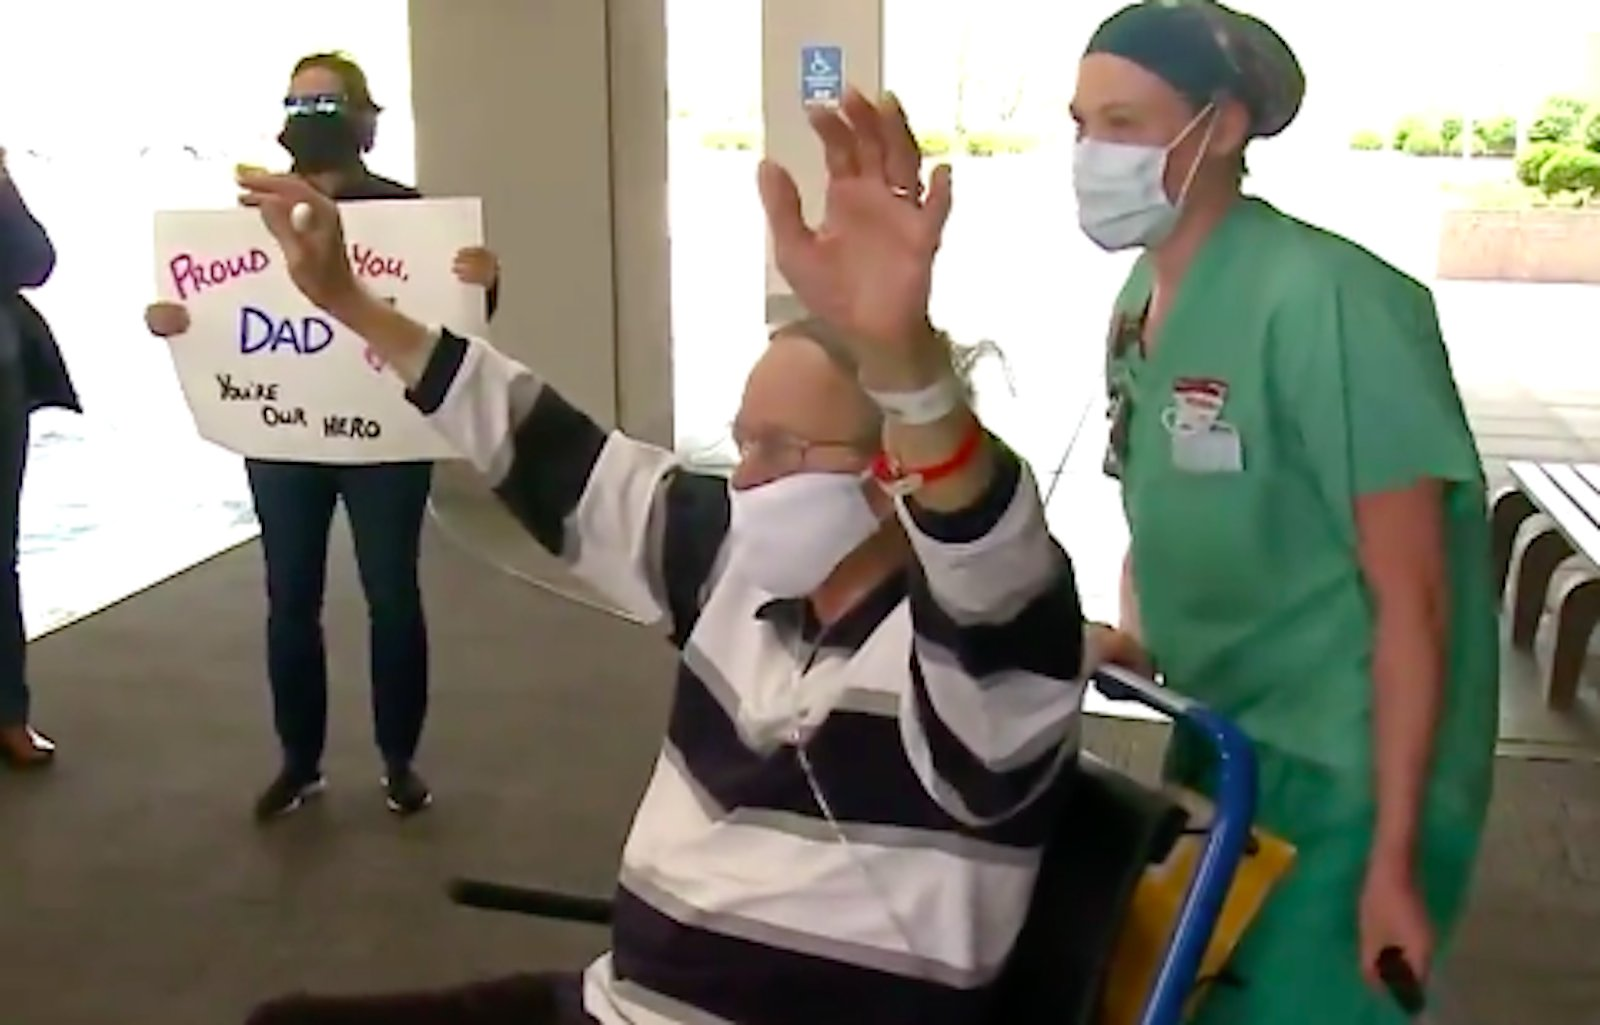 Staff members at St. Luke's Hospital in St. Louis County, Missouri lined a hallway and clapped for 87-year old Don Lochmoeller as he was discharged April 9, 2020. (KMOV via CNN)